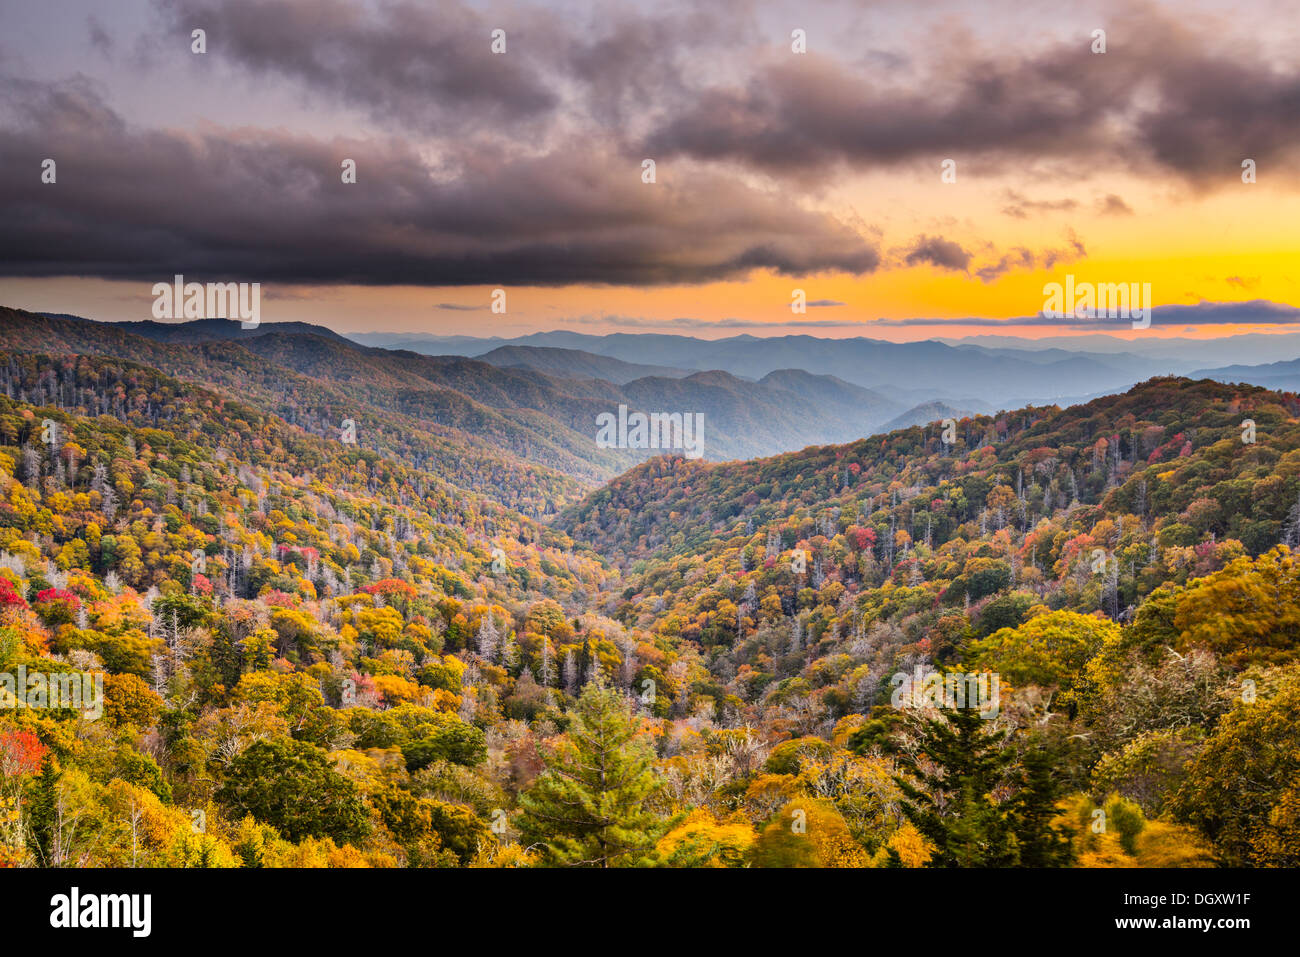 Herbst Sonnenuntergang in den Smoky Mountains National Park. Stockfoto